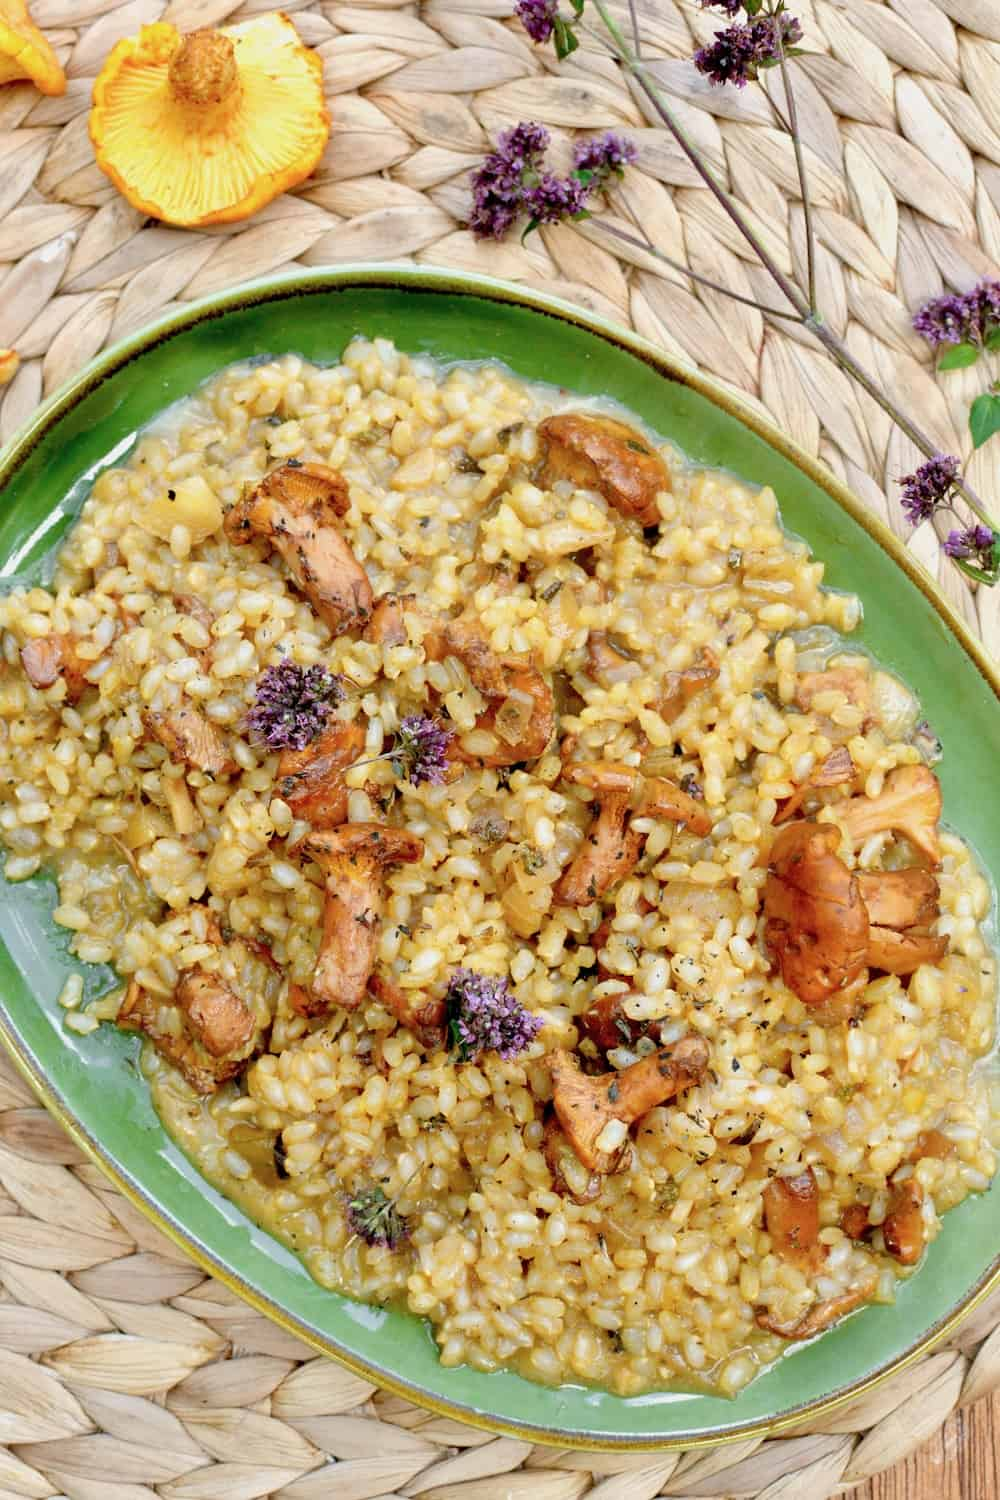 The golden yellow colour of the risotto with wild chanterelle mushrooms and purple oregano flowers